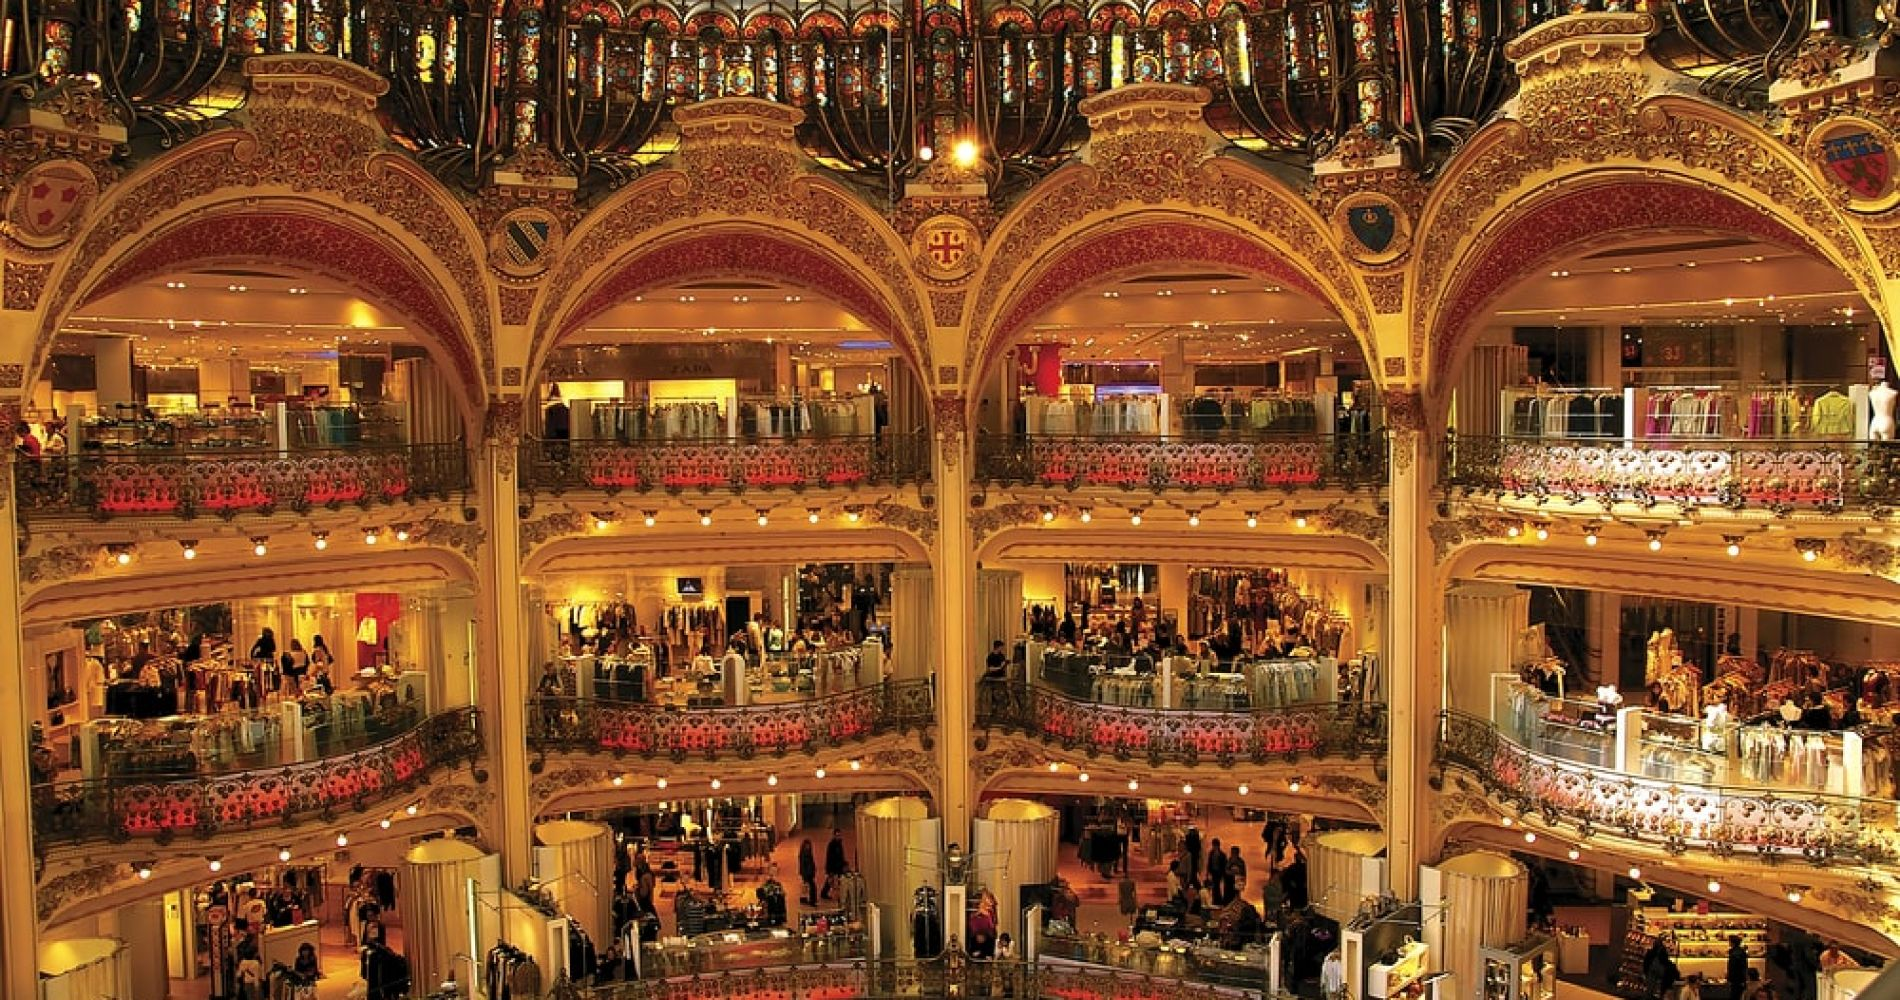 Go to the Galeries de Lafayette in Paris